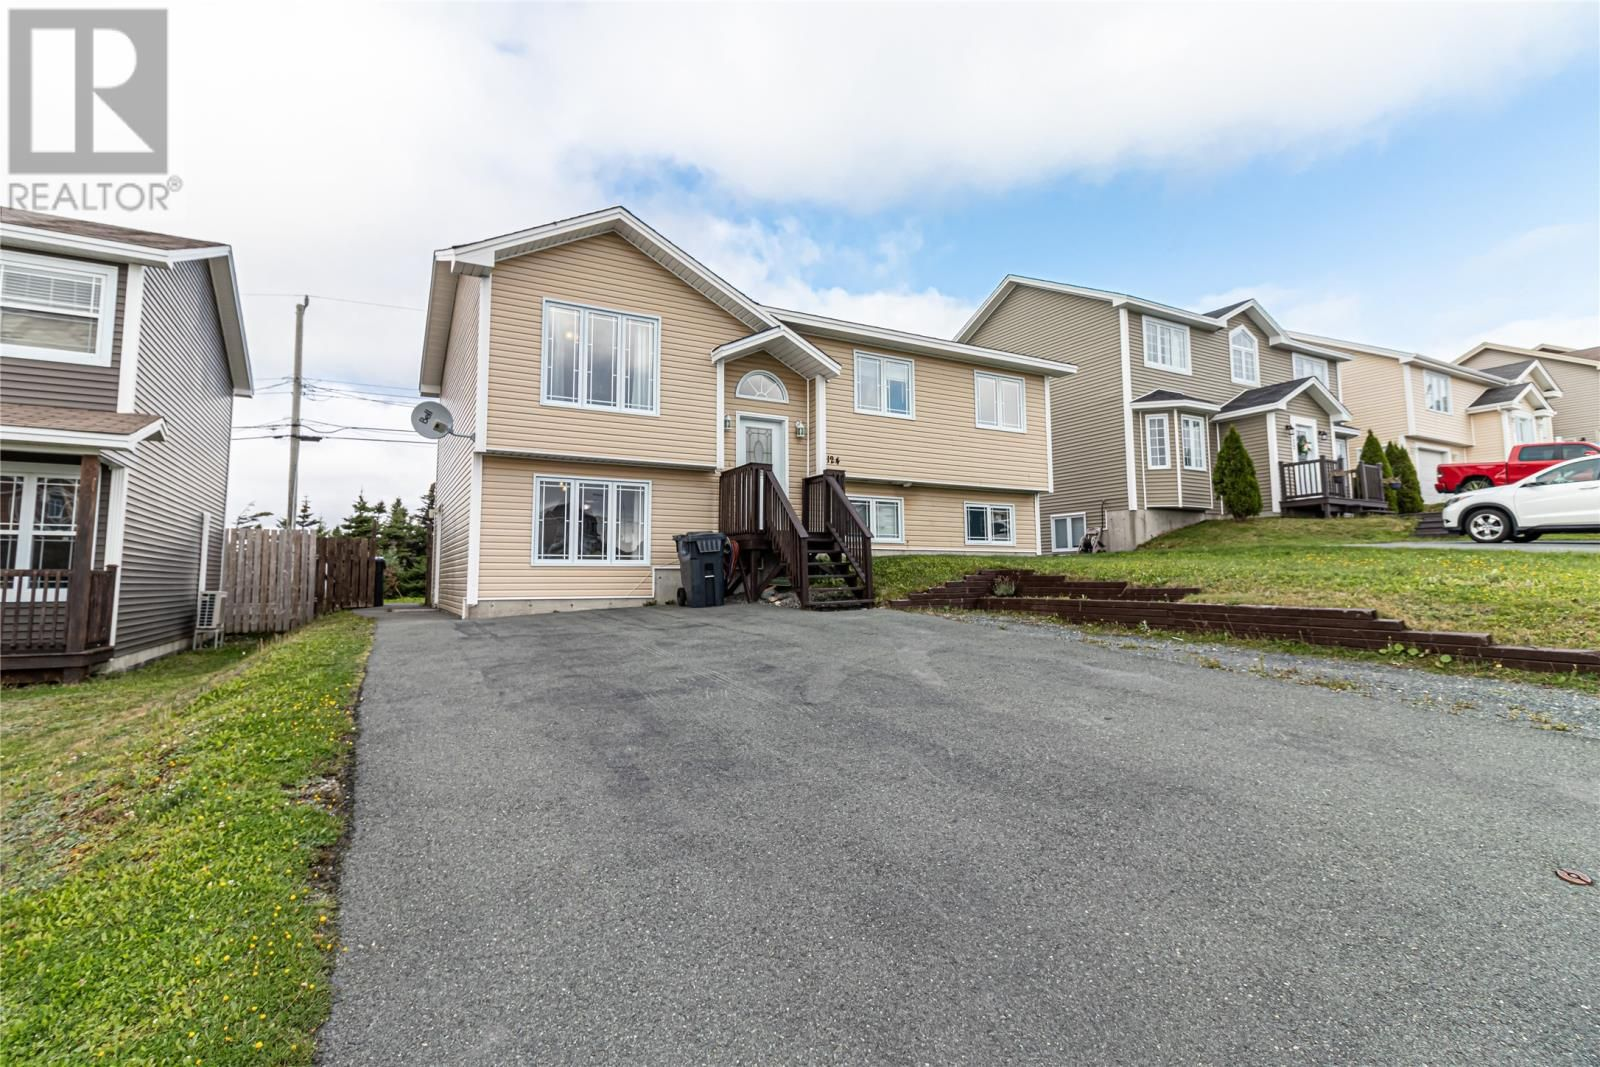 Main Photo: 124 Mallow Drive in Paradise: House for sale : MLS®# 1237512